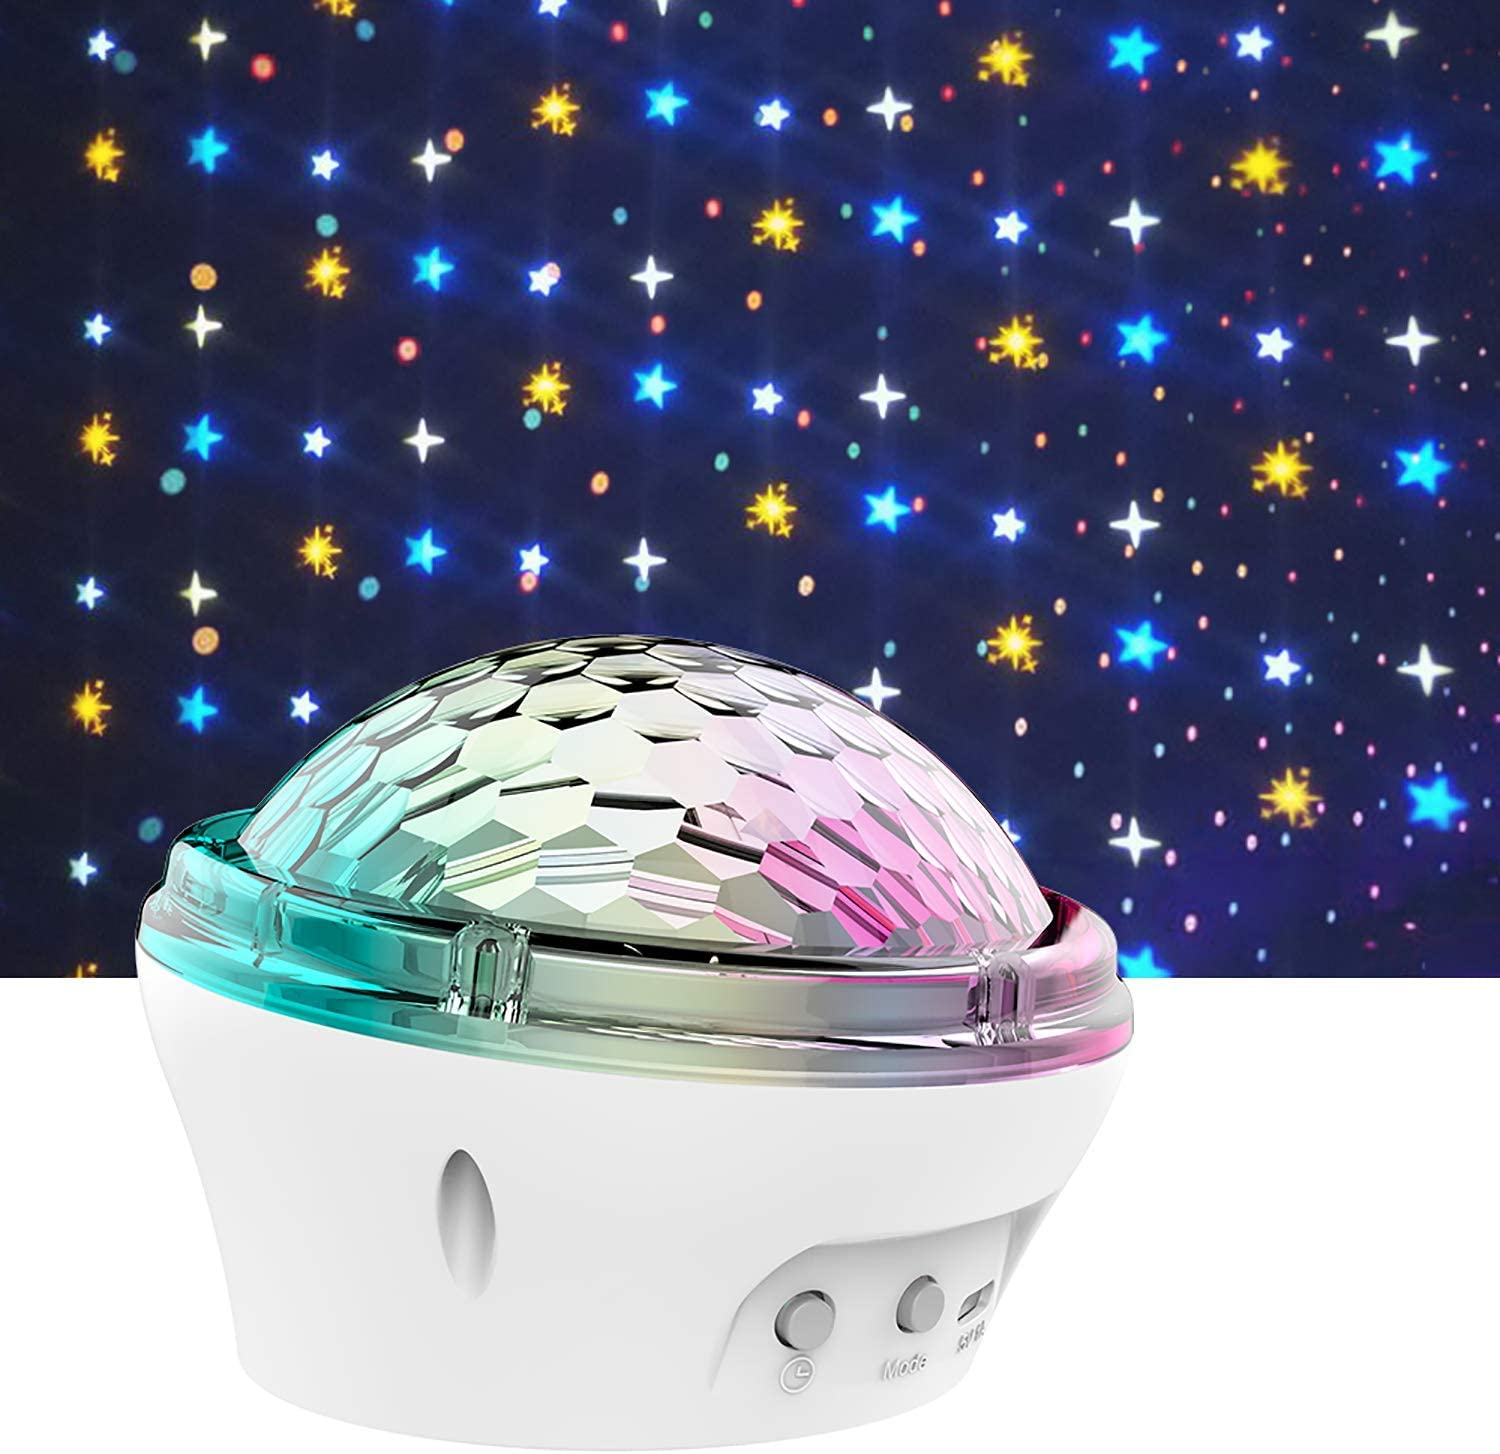 Moon Star Projector Light for Kids,Star Sky Projector Sky Night Light Projector Bedroom Ceiling Star Projector with Timer 3 4 5 6 7-12 Year Old Girls Boy-White